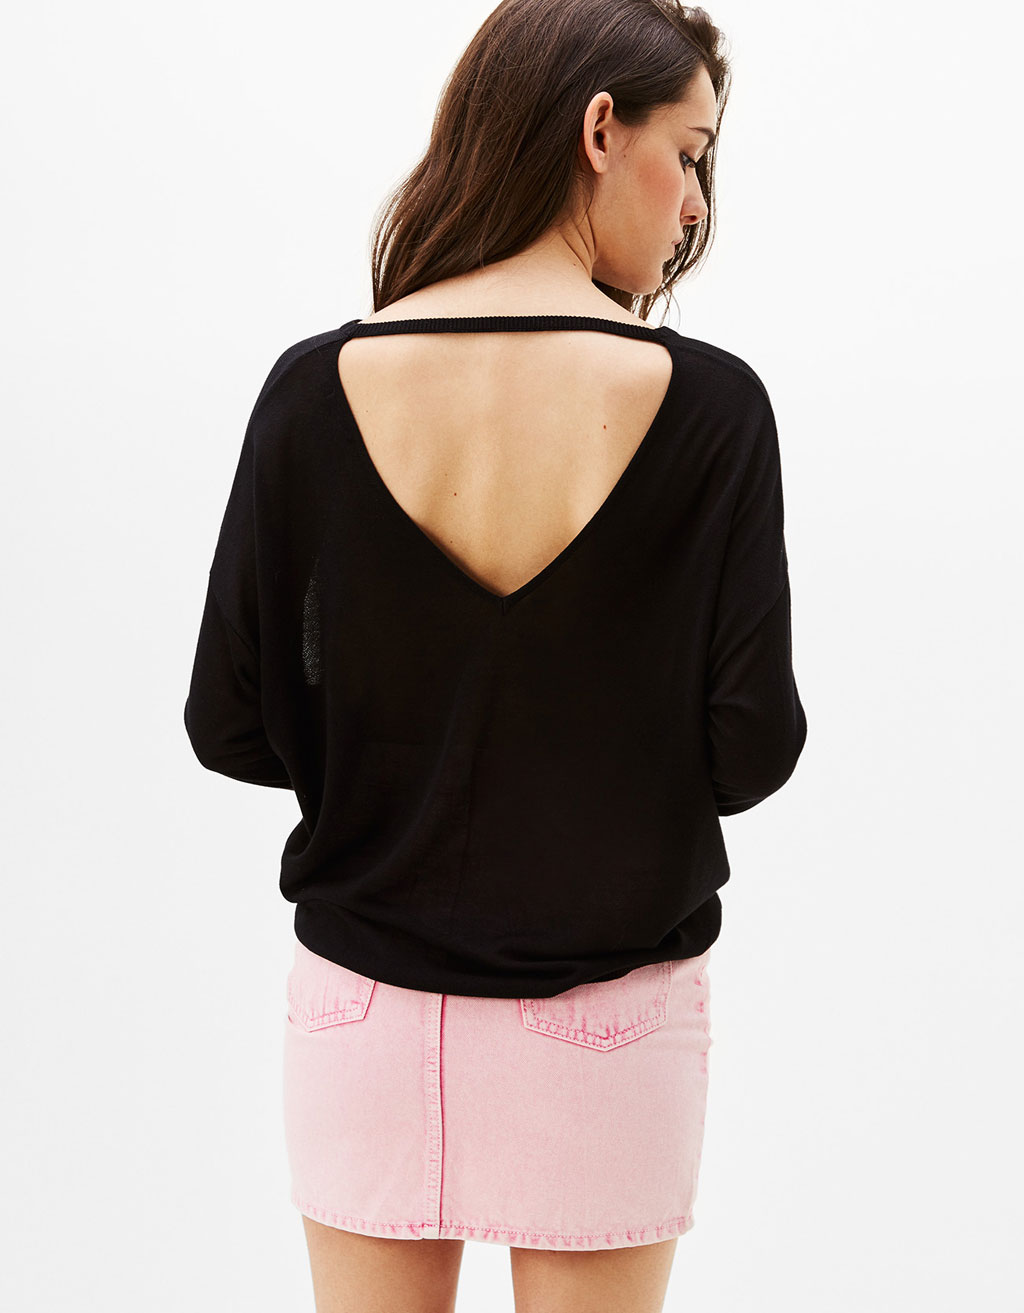 Choker sweater with V-neck back